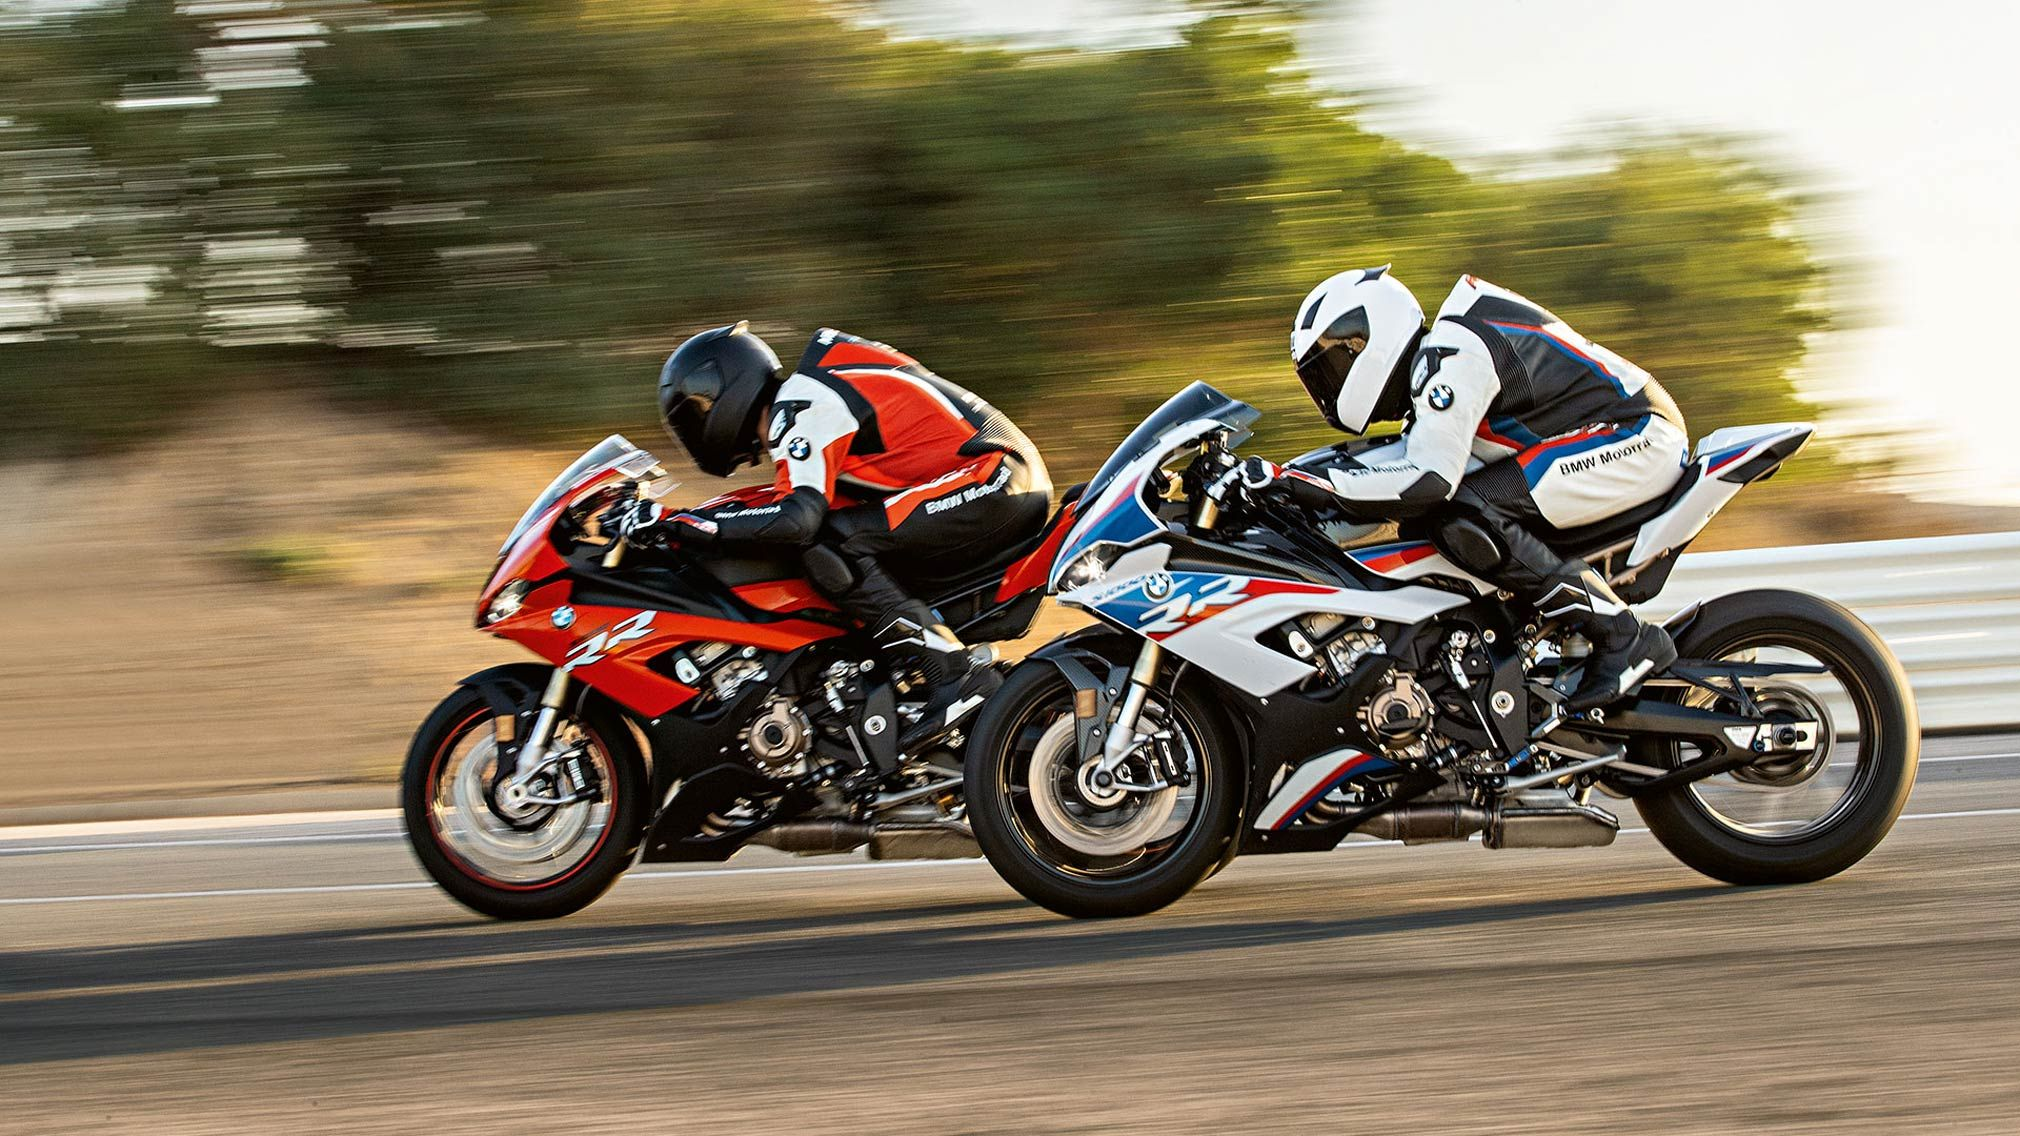 Positive Mid Season Review In The New Bmw S 1000 Rr S Maiden Season Munich This Weekend 5th To 7th July Marks The Start O Bmw S1000rr Bmw Motorrad New Bmw